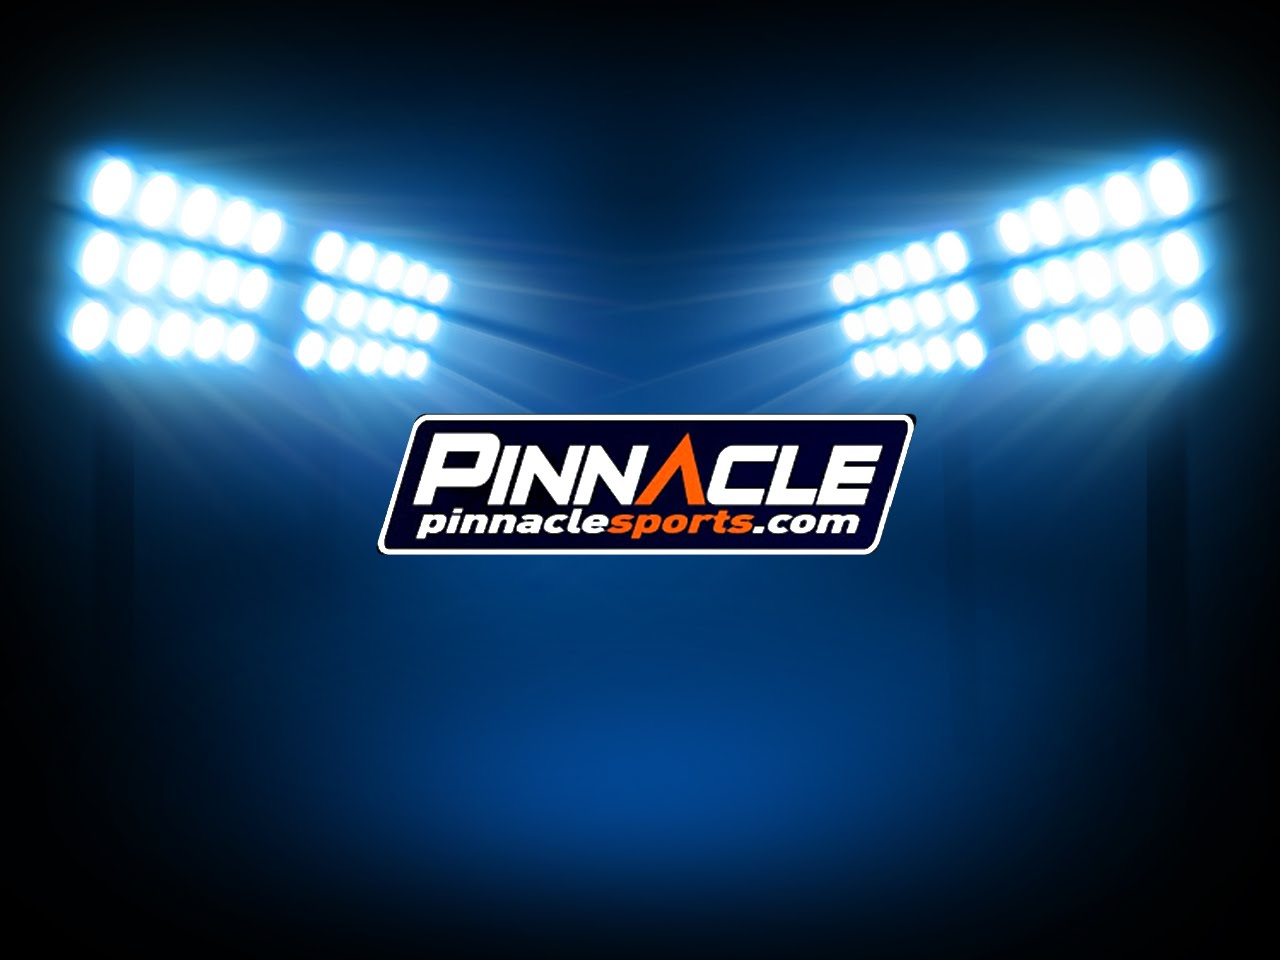 Pinnaclesports com